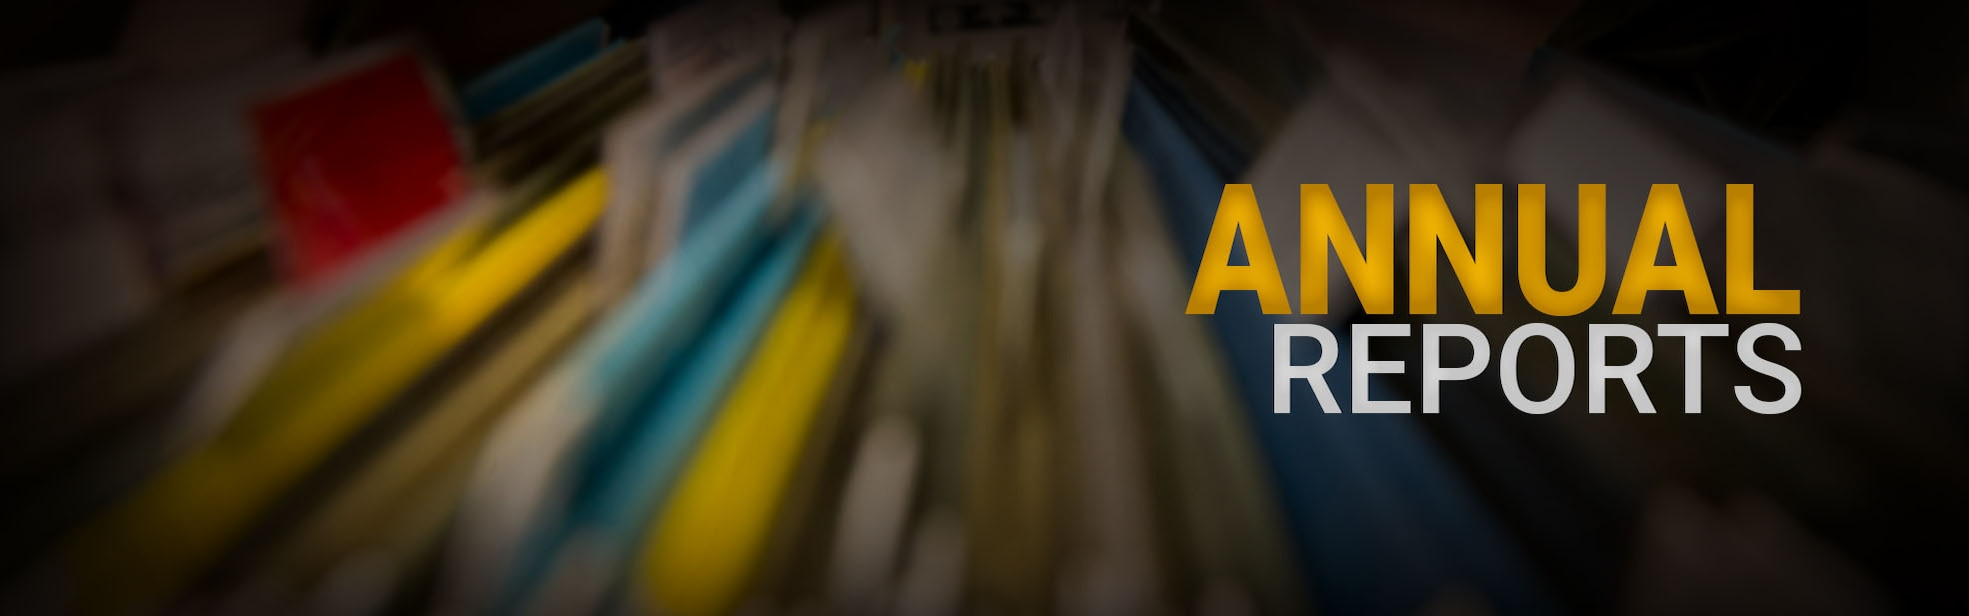 Annual Reports Banner